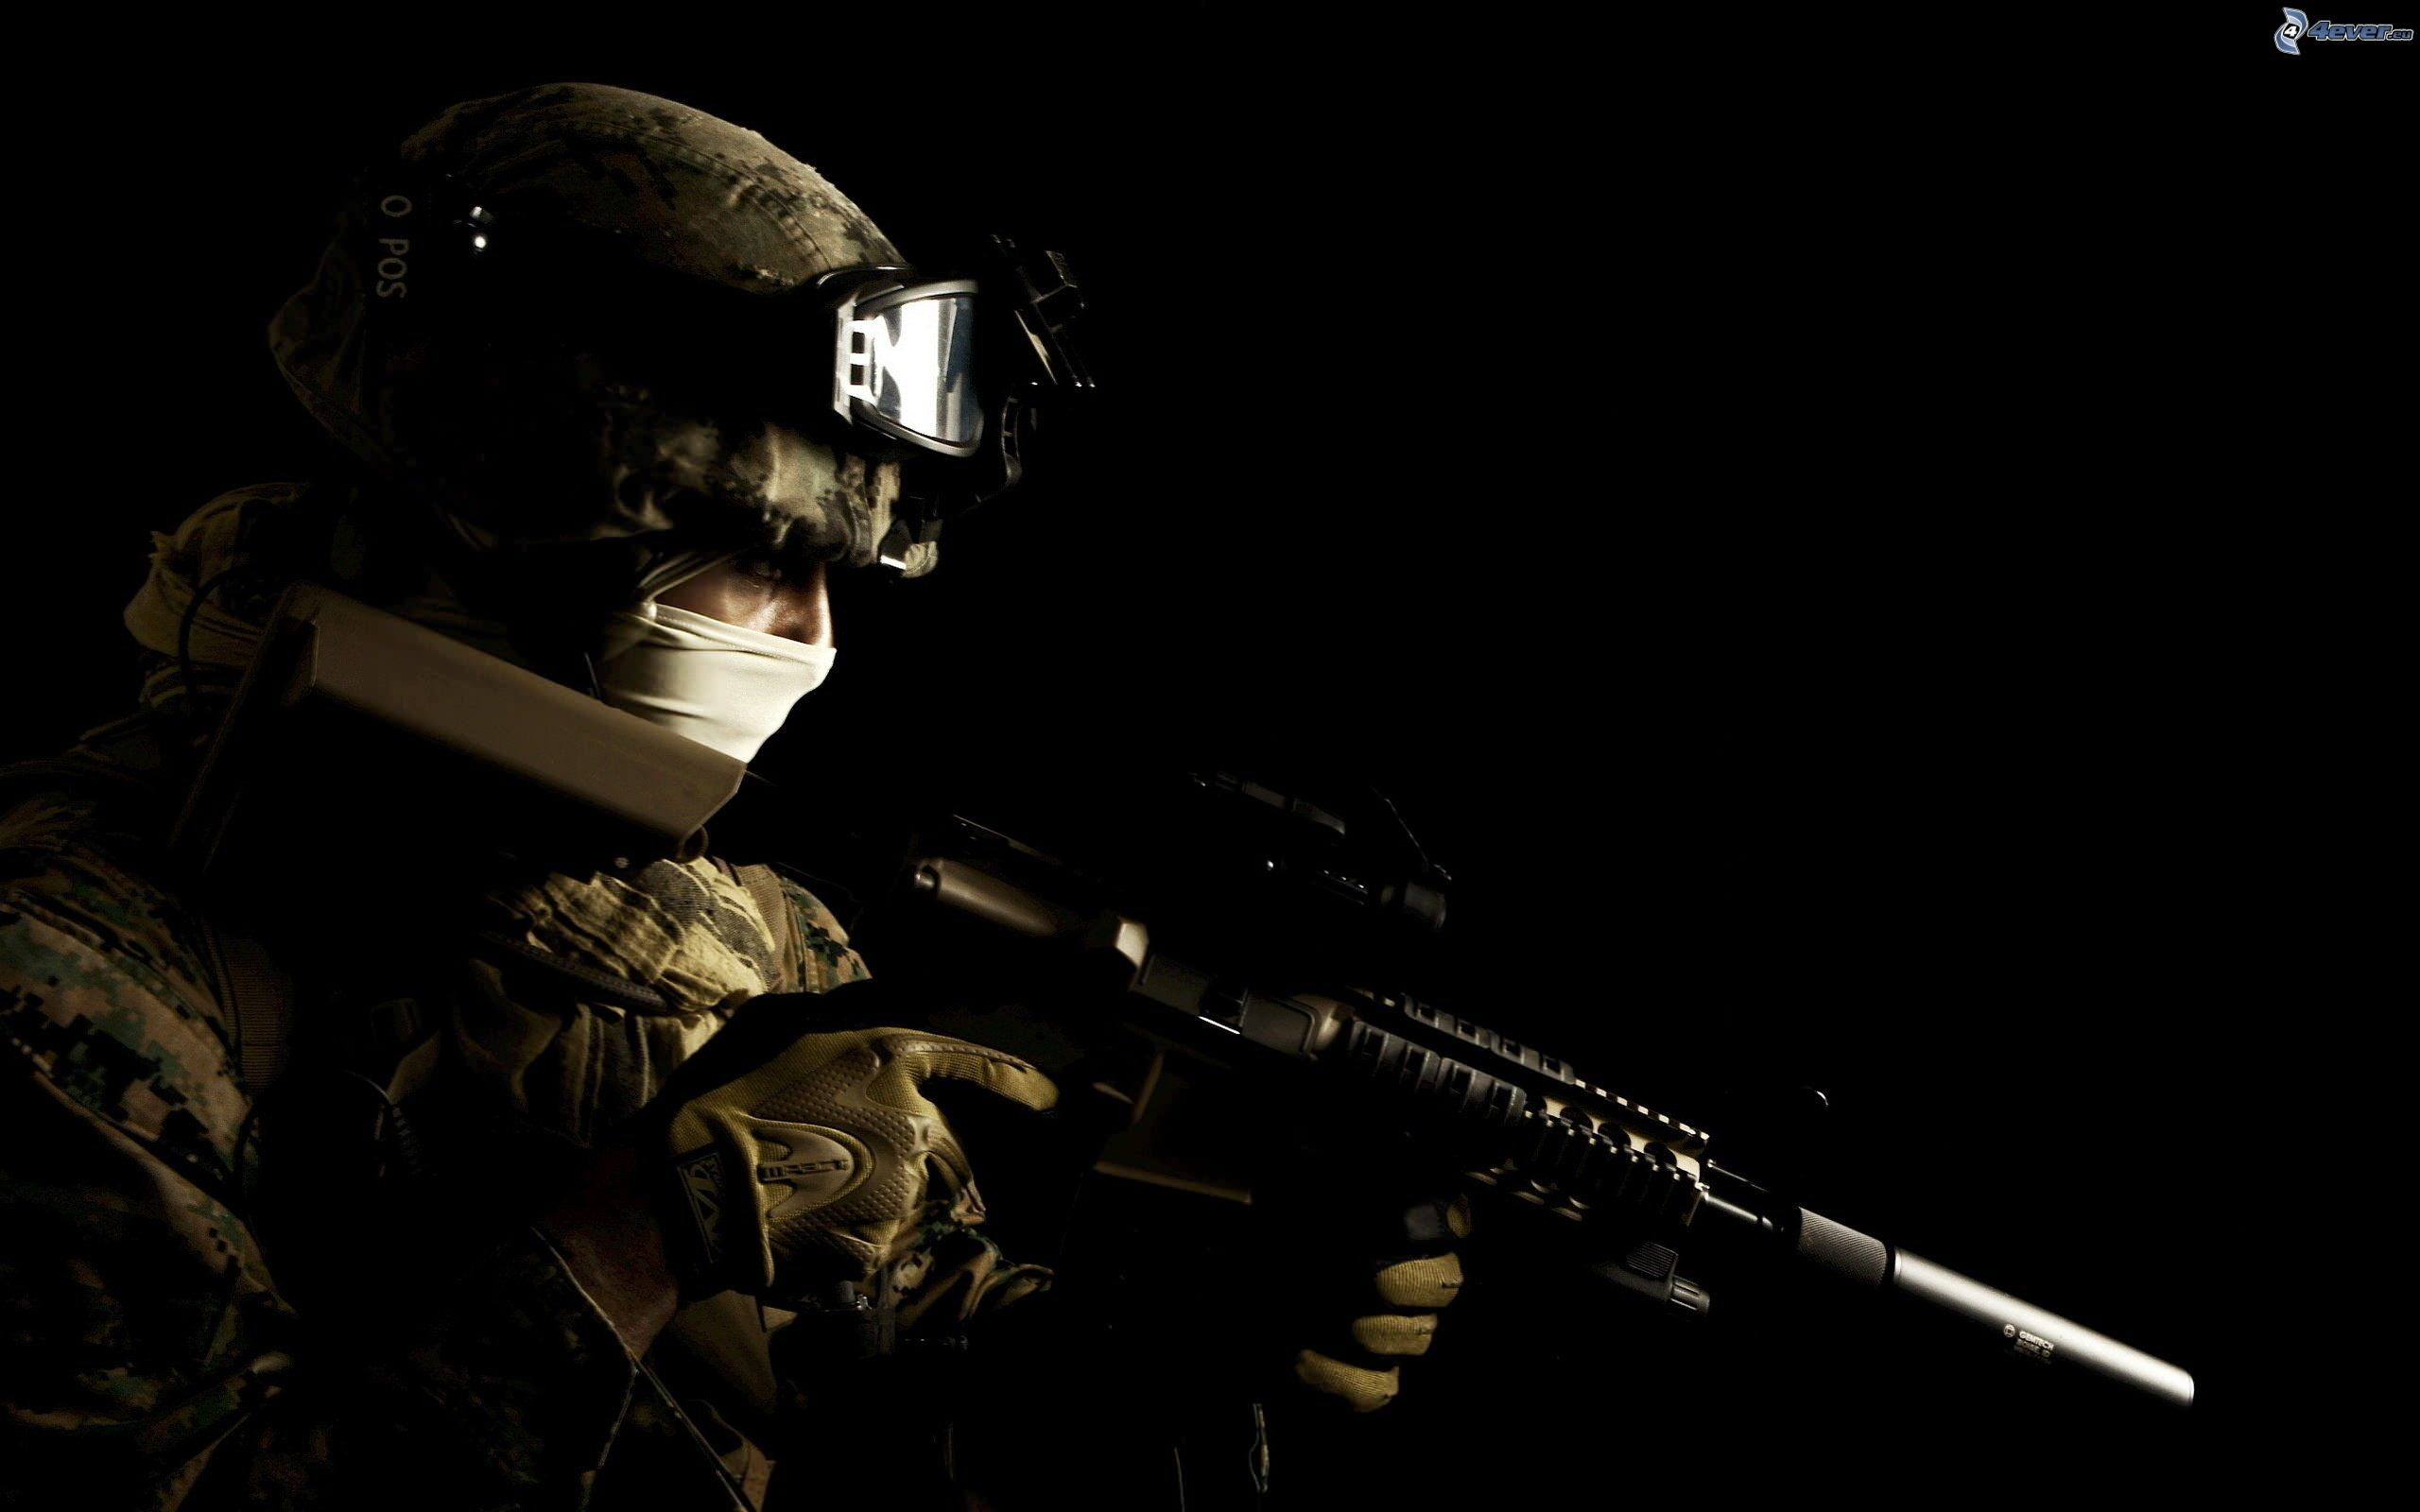 Call of duty 4 modern warfare patch v1 4 cracked